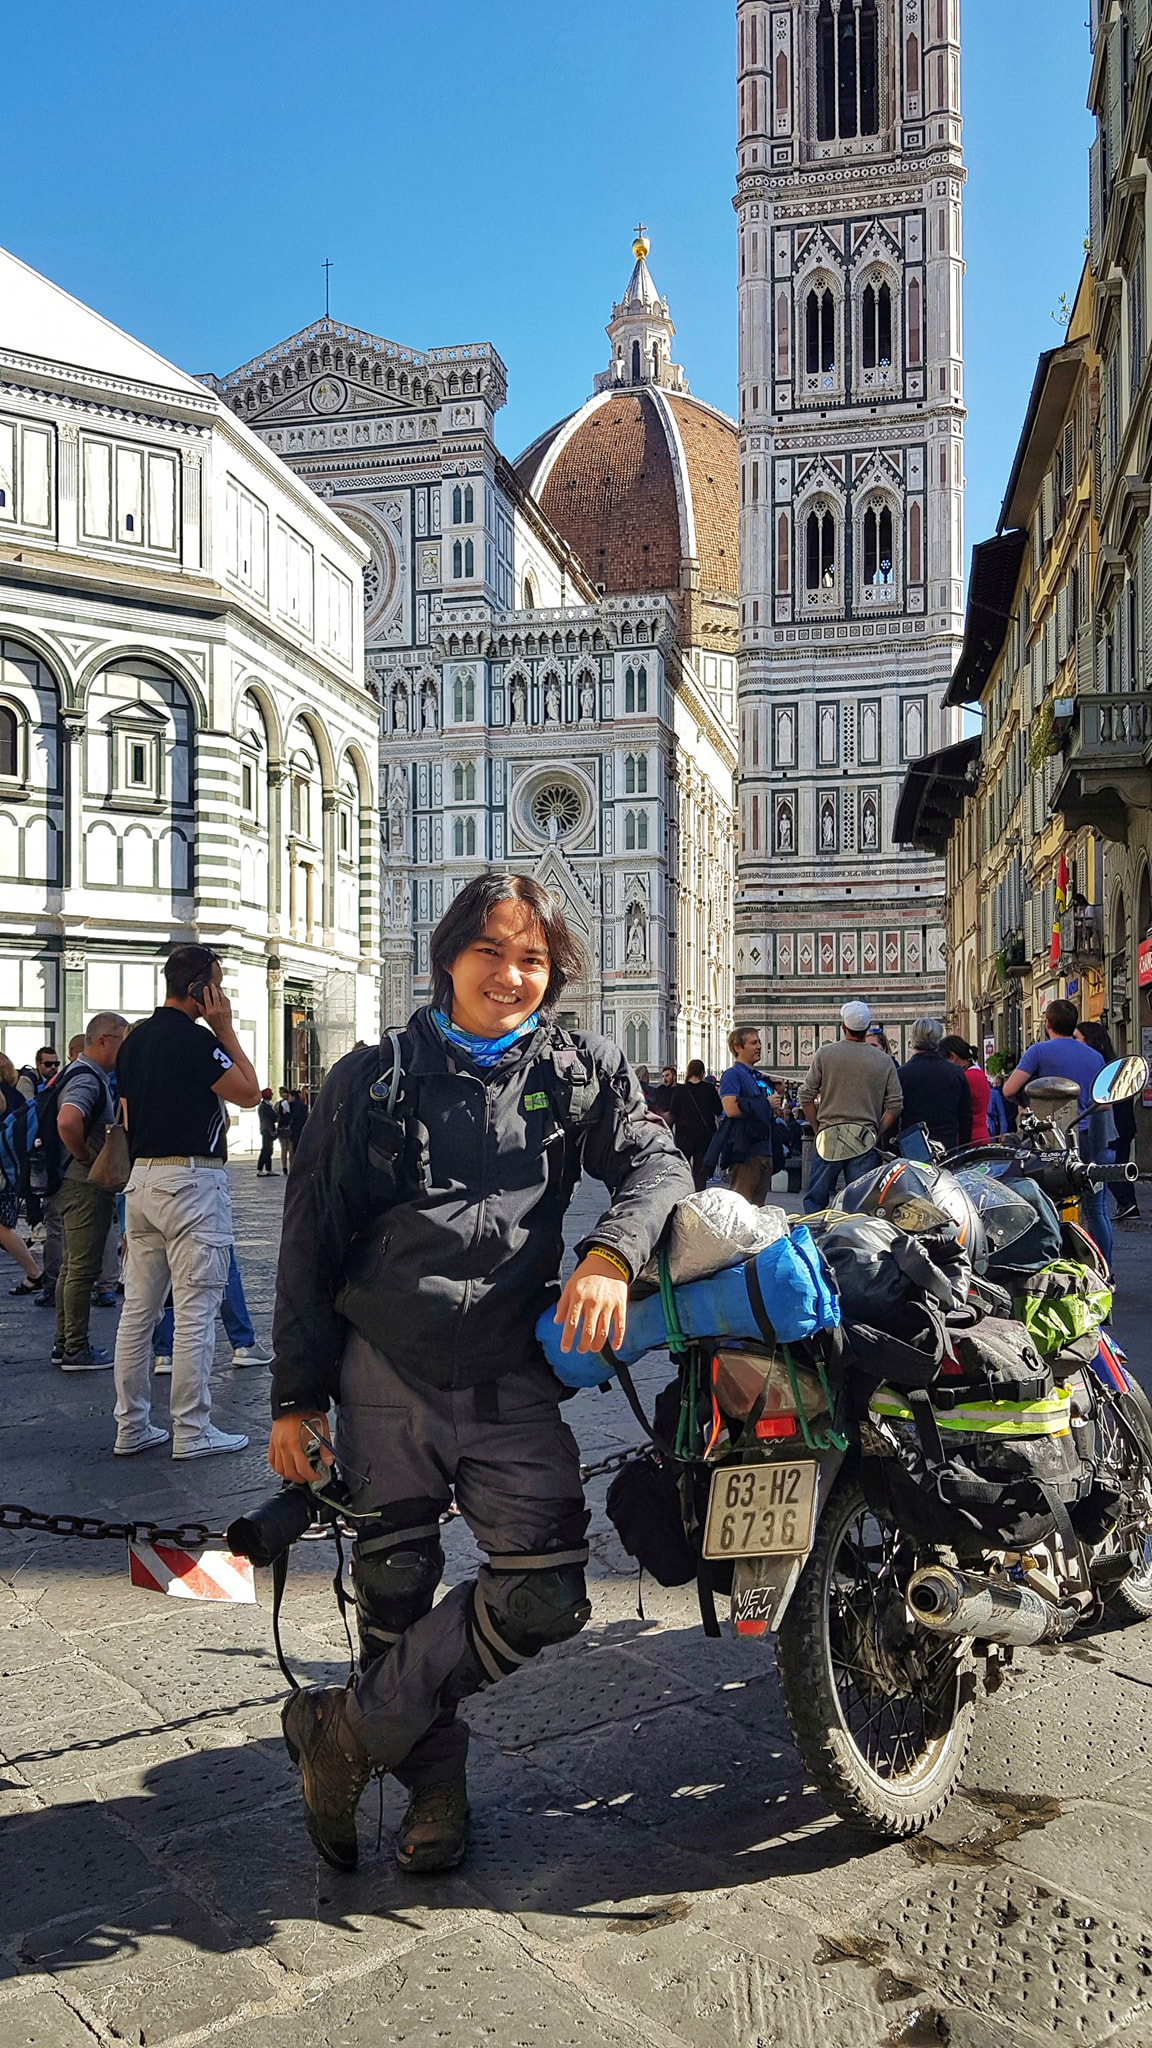 Vietnamese globetrotter Tran Dang Dang Khoa poses for a photo with his motorbike in Italy in a photo posted to his verified Facebook account.